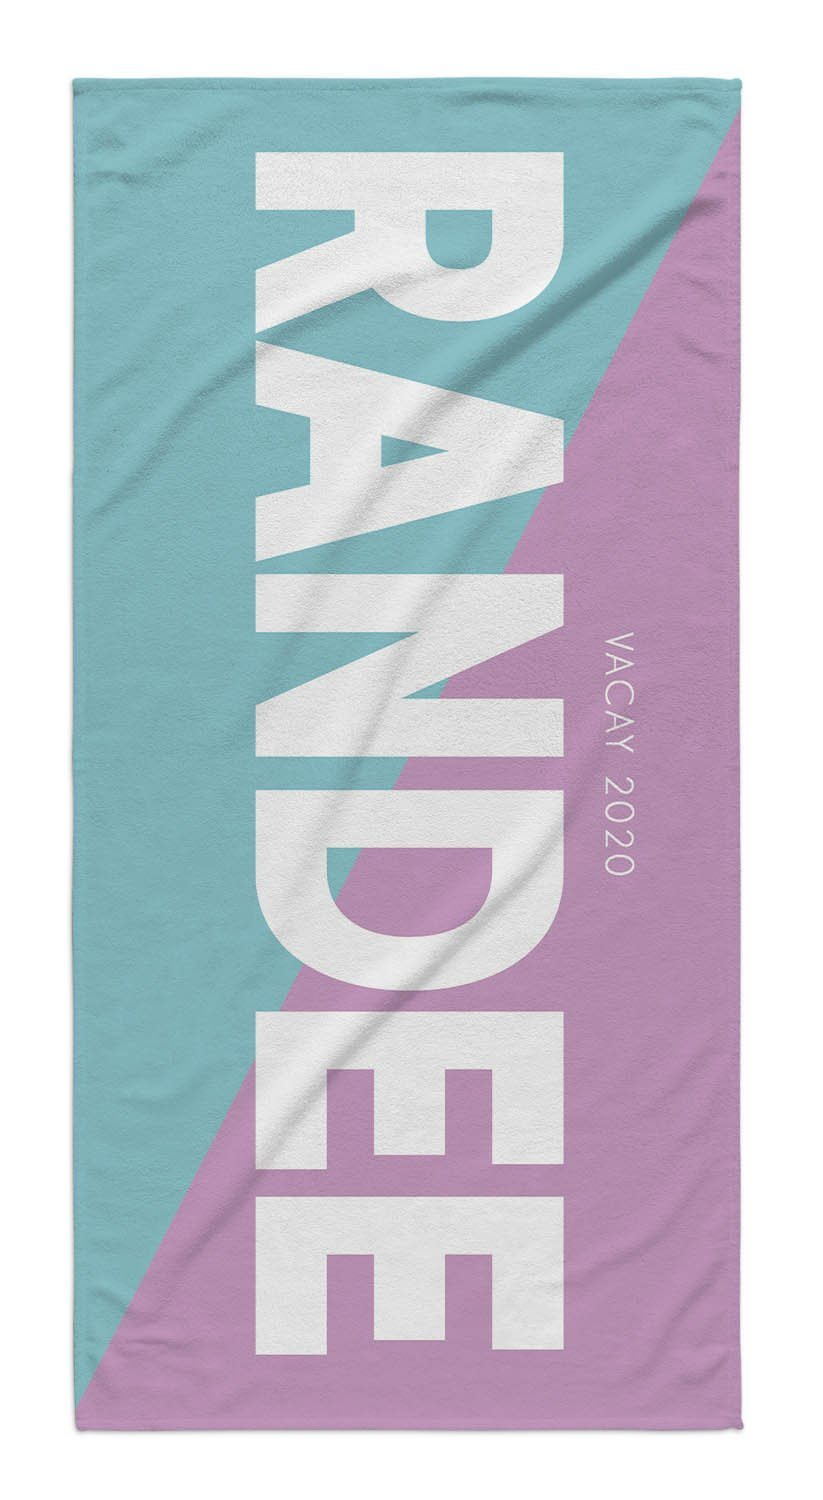 2 TONE COLOR BLOCK PERSONALIZED TOWEL